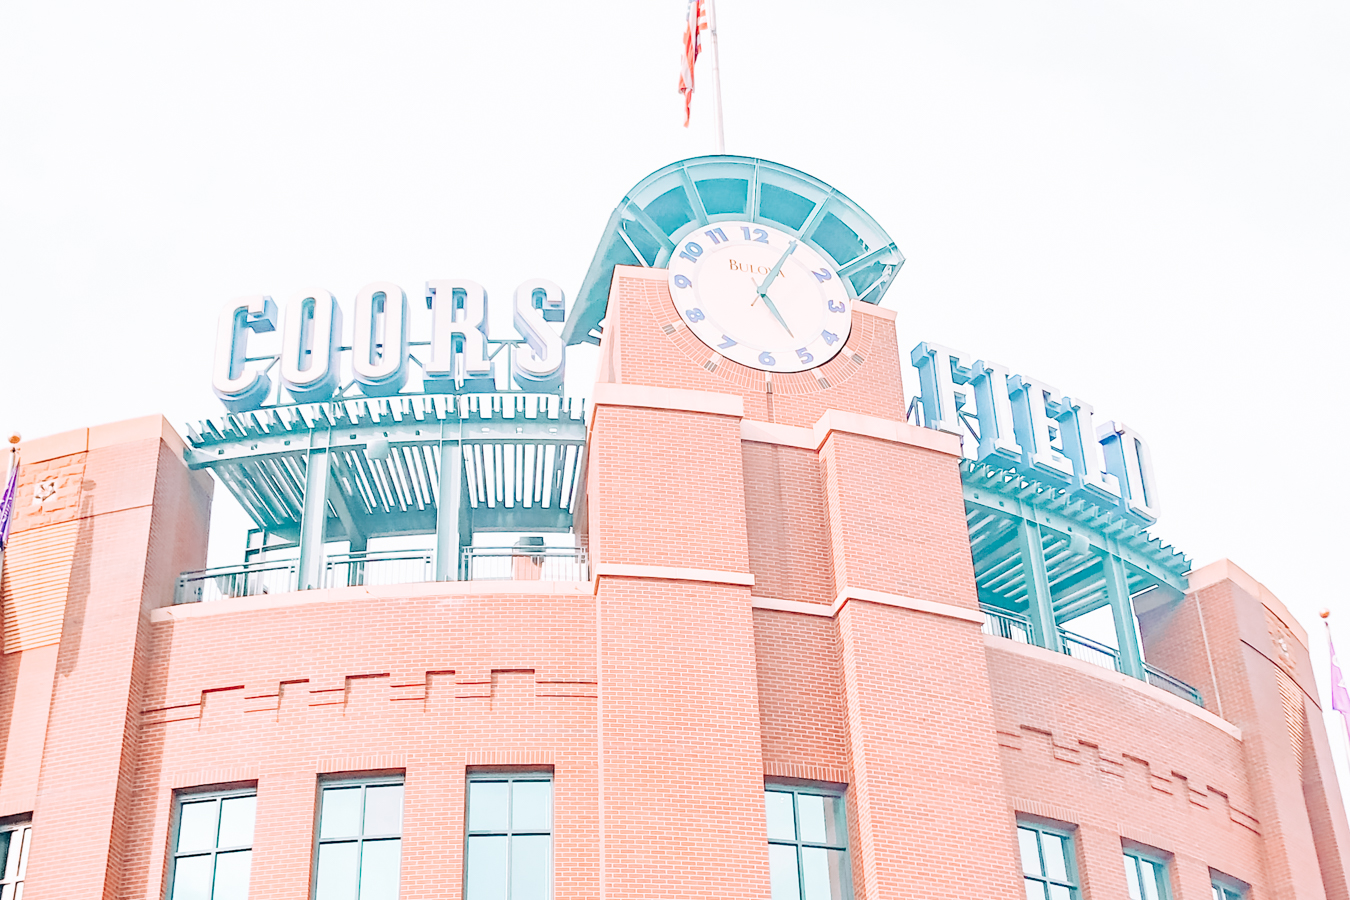 Coors Field from the outside